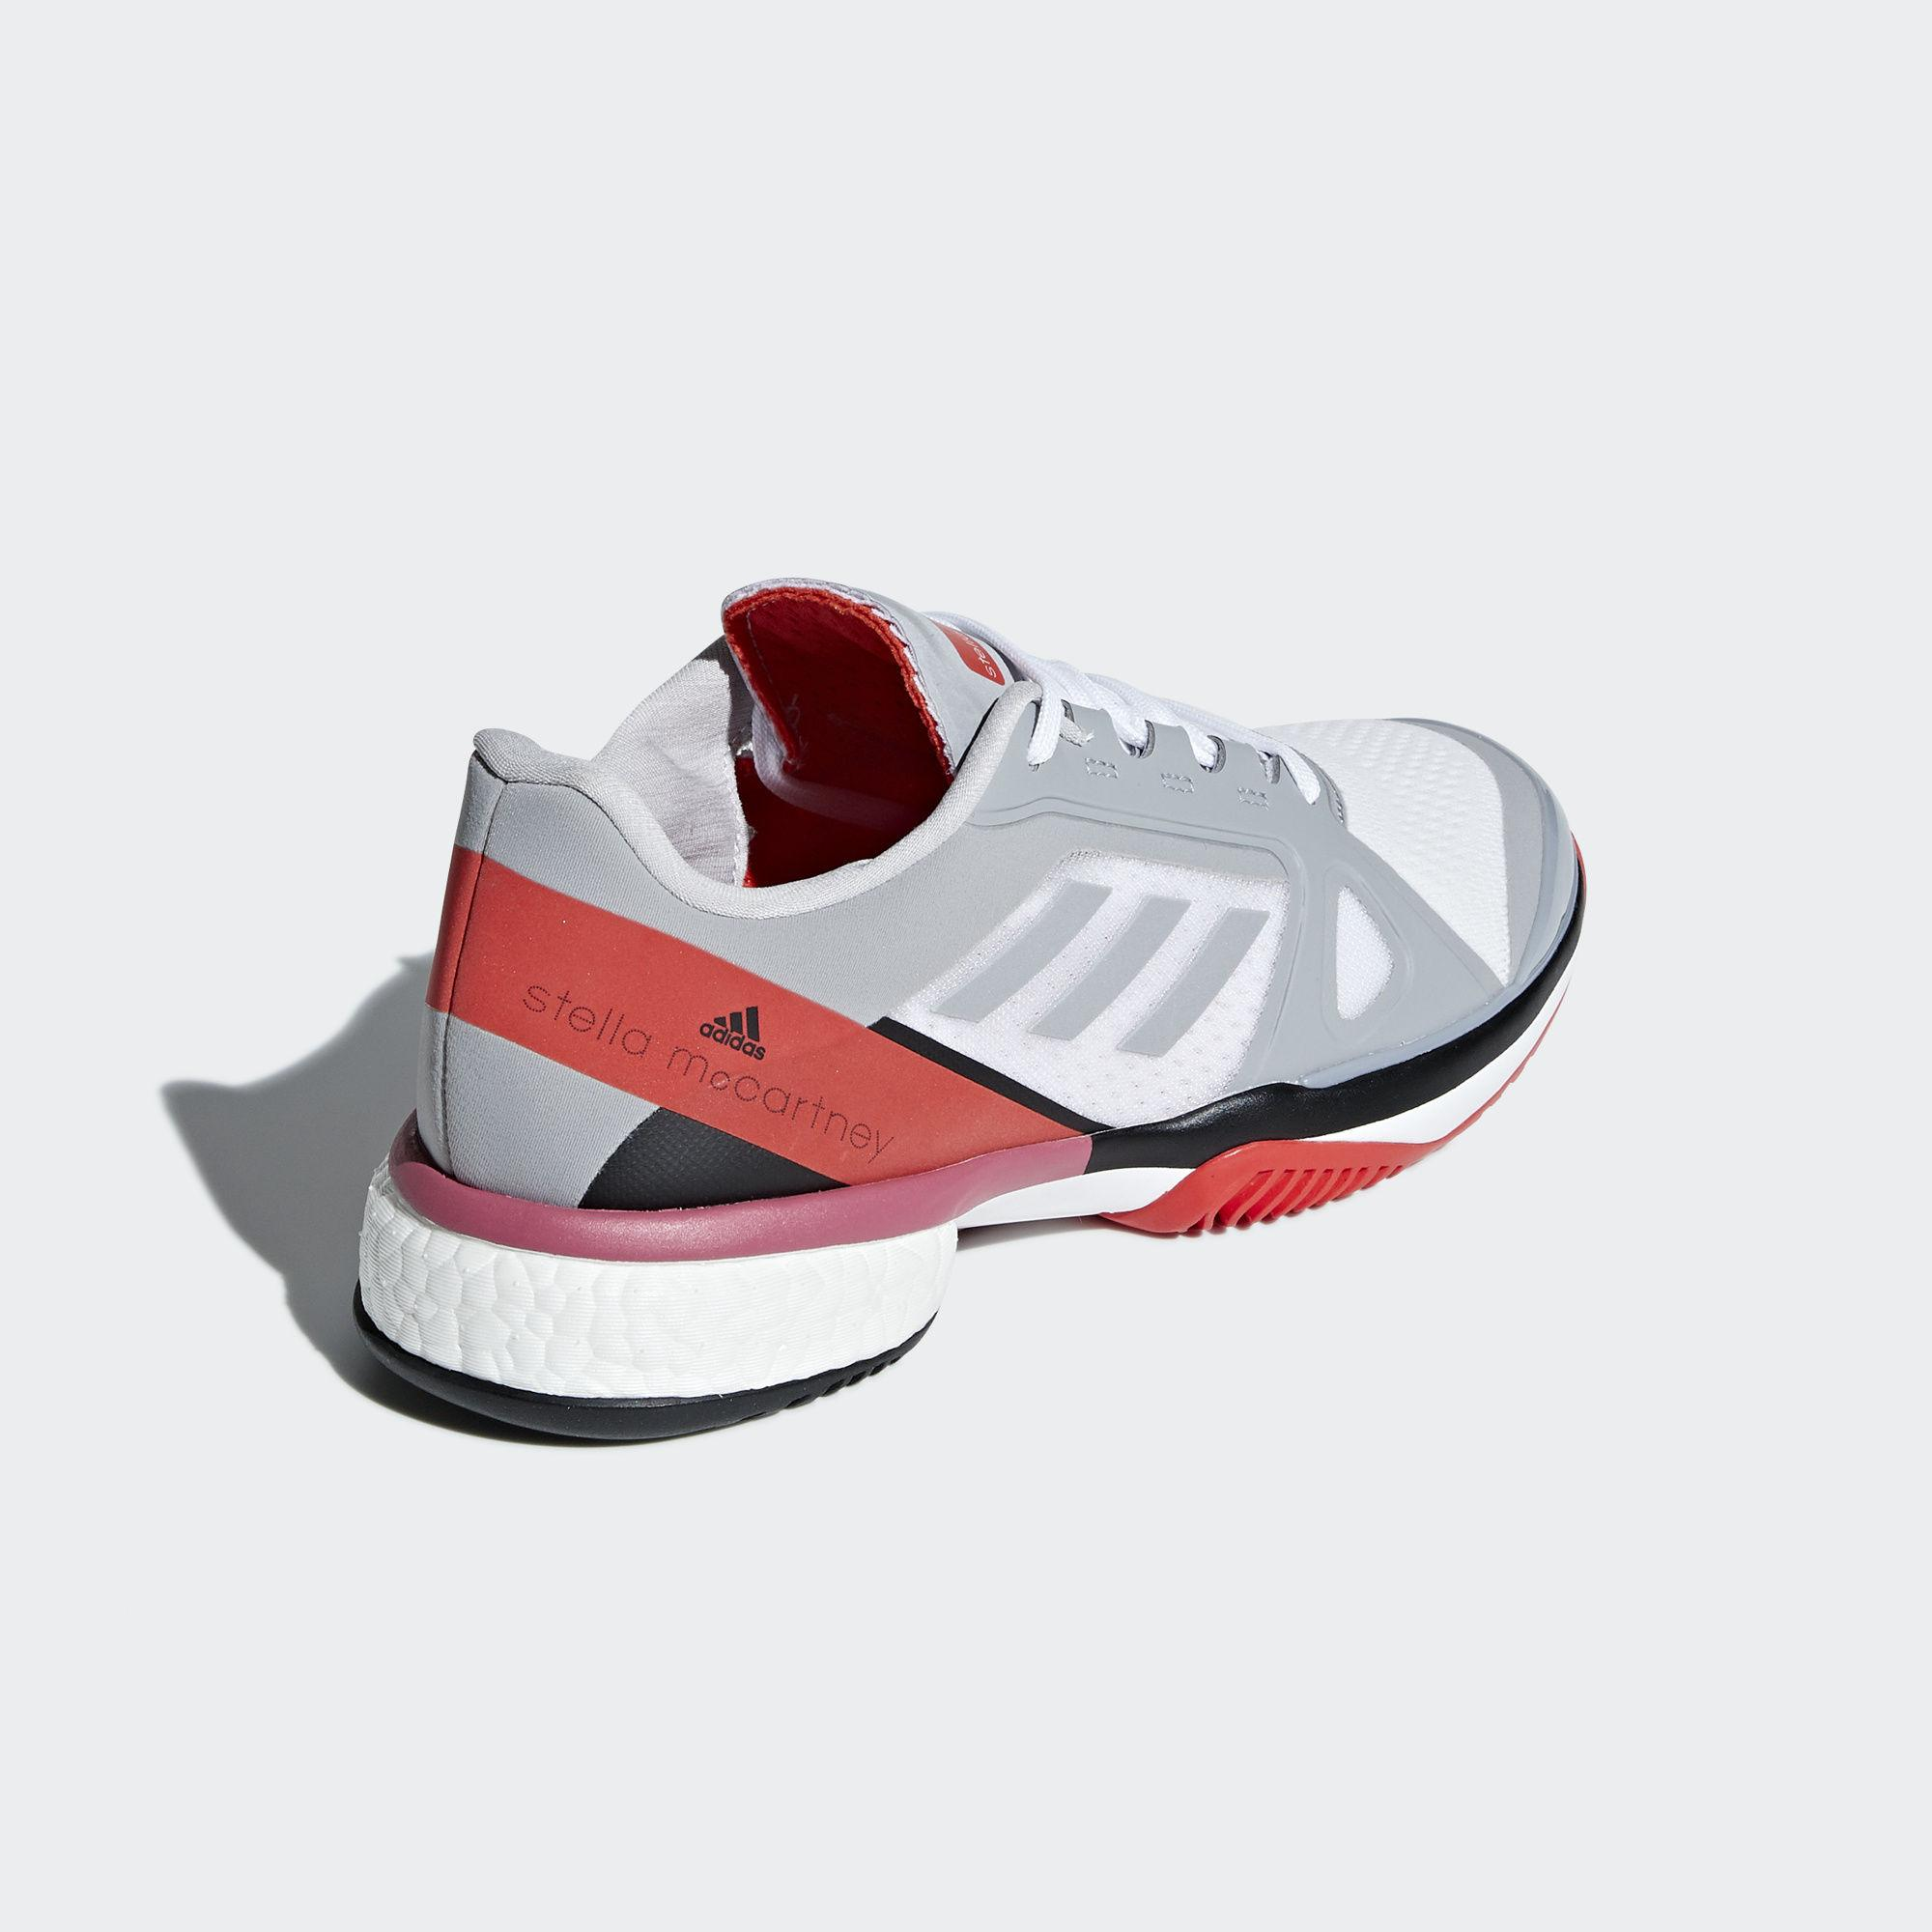 463ce6f0e7aeb1 Adidas Womens SMC Barricade Boost Tennis Shoes - Grey Red ...